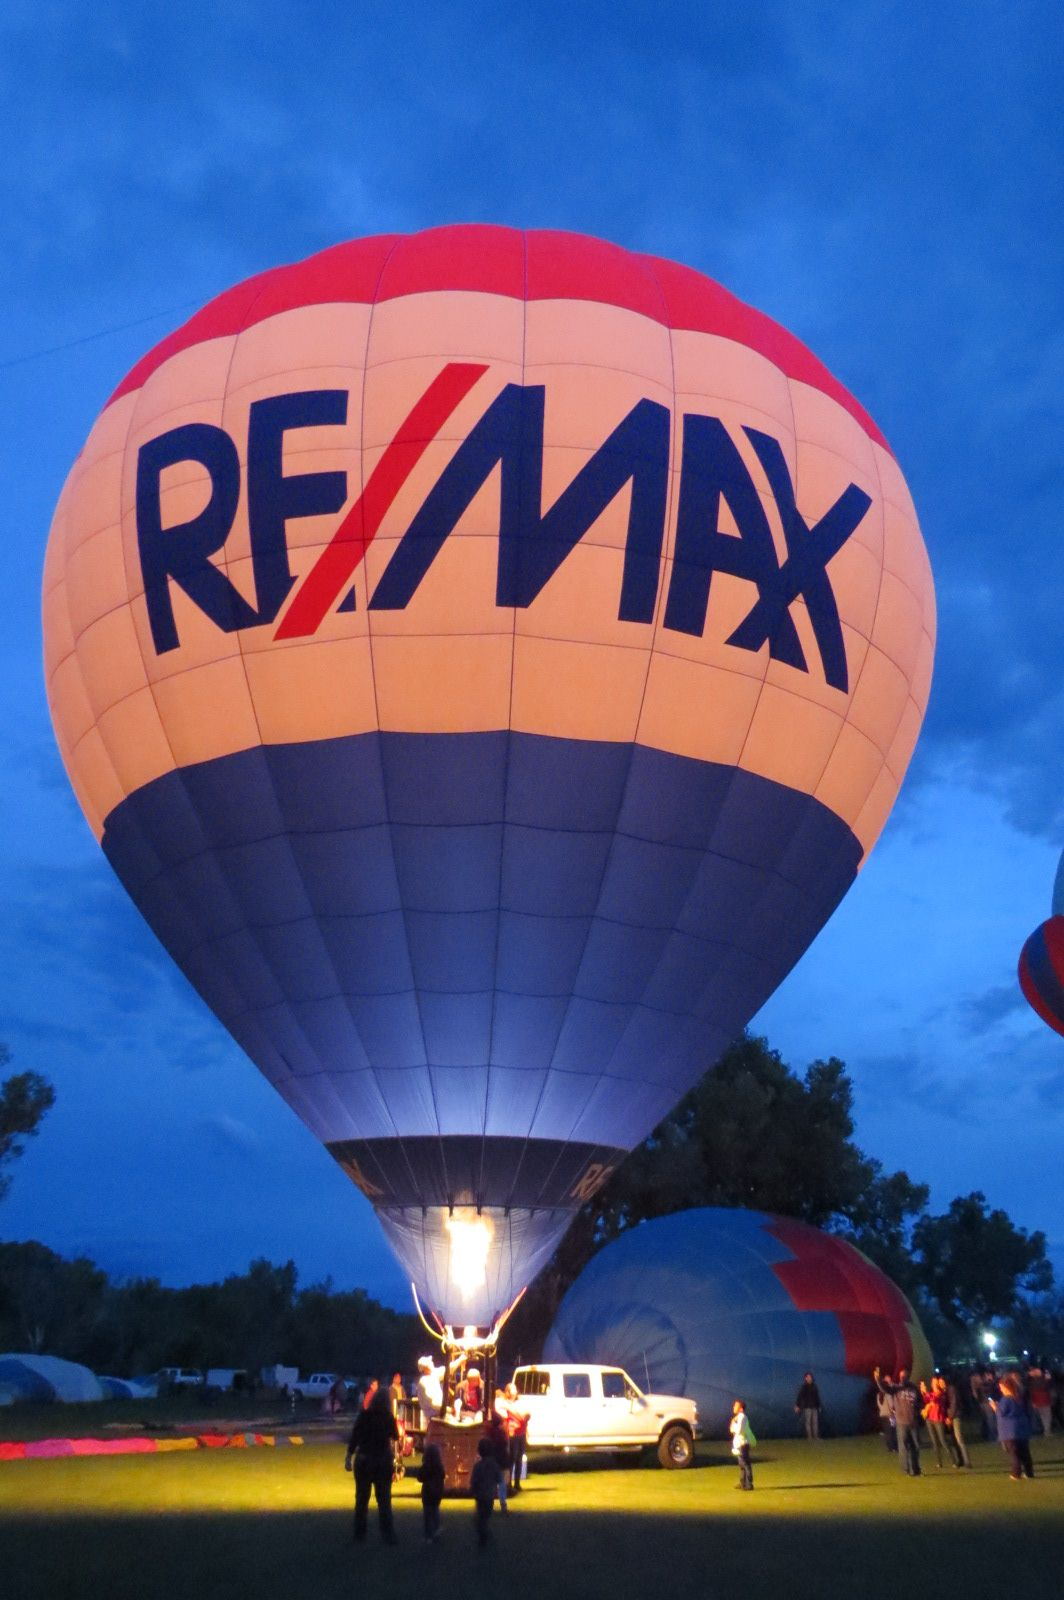 The RE/MAX Balloon at the Hot Air Balloon Glow Festival in